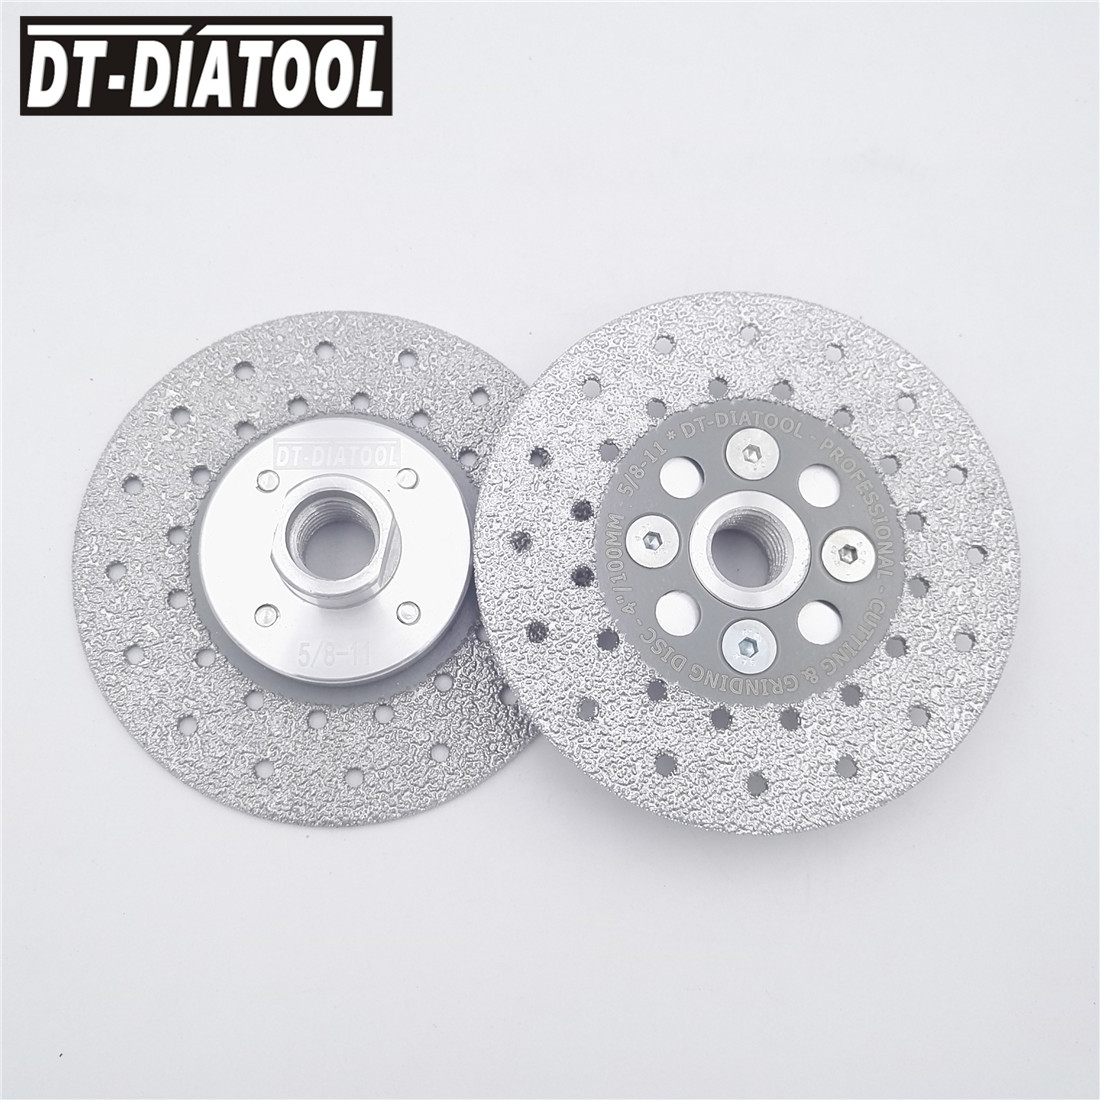 Tools Qualified 2pcs 4 Double Side Coated Diamond Cutting Disc Grinding Wheel 5/8-11 Thread 100mm Saw Blade For Granite Marble Stone Concrete